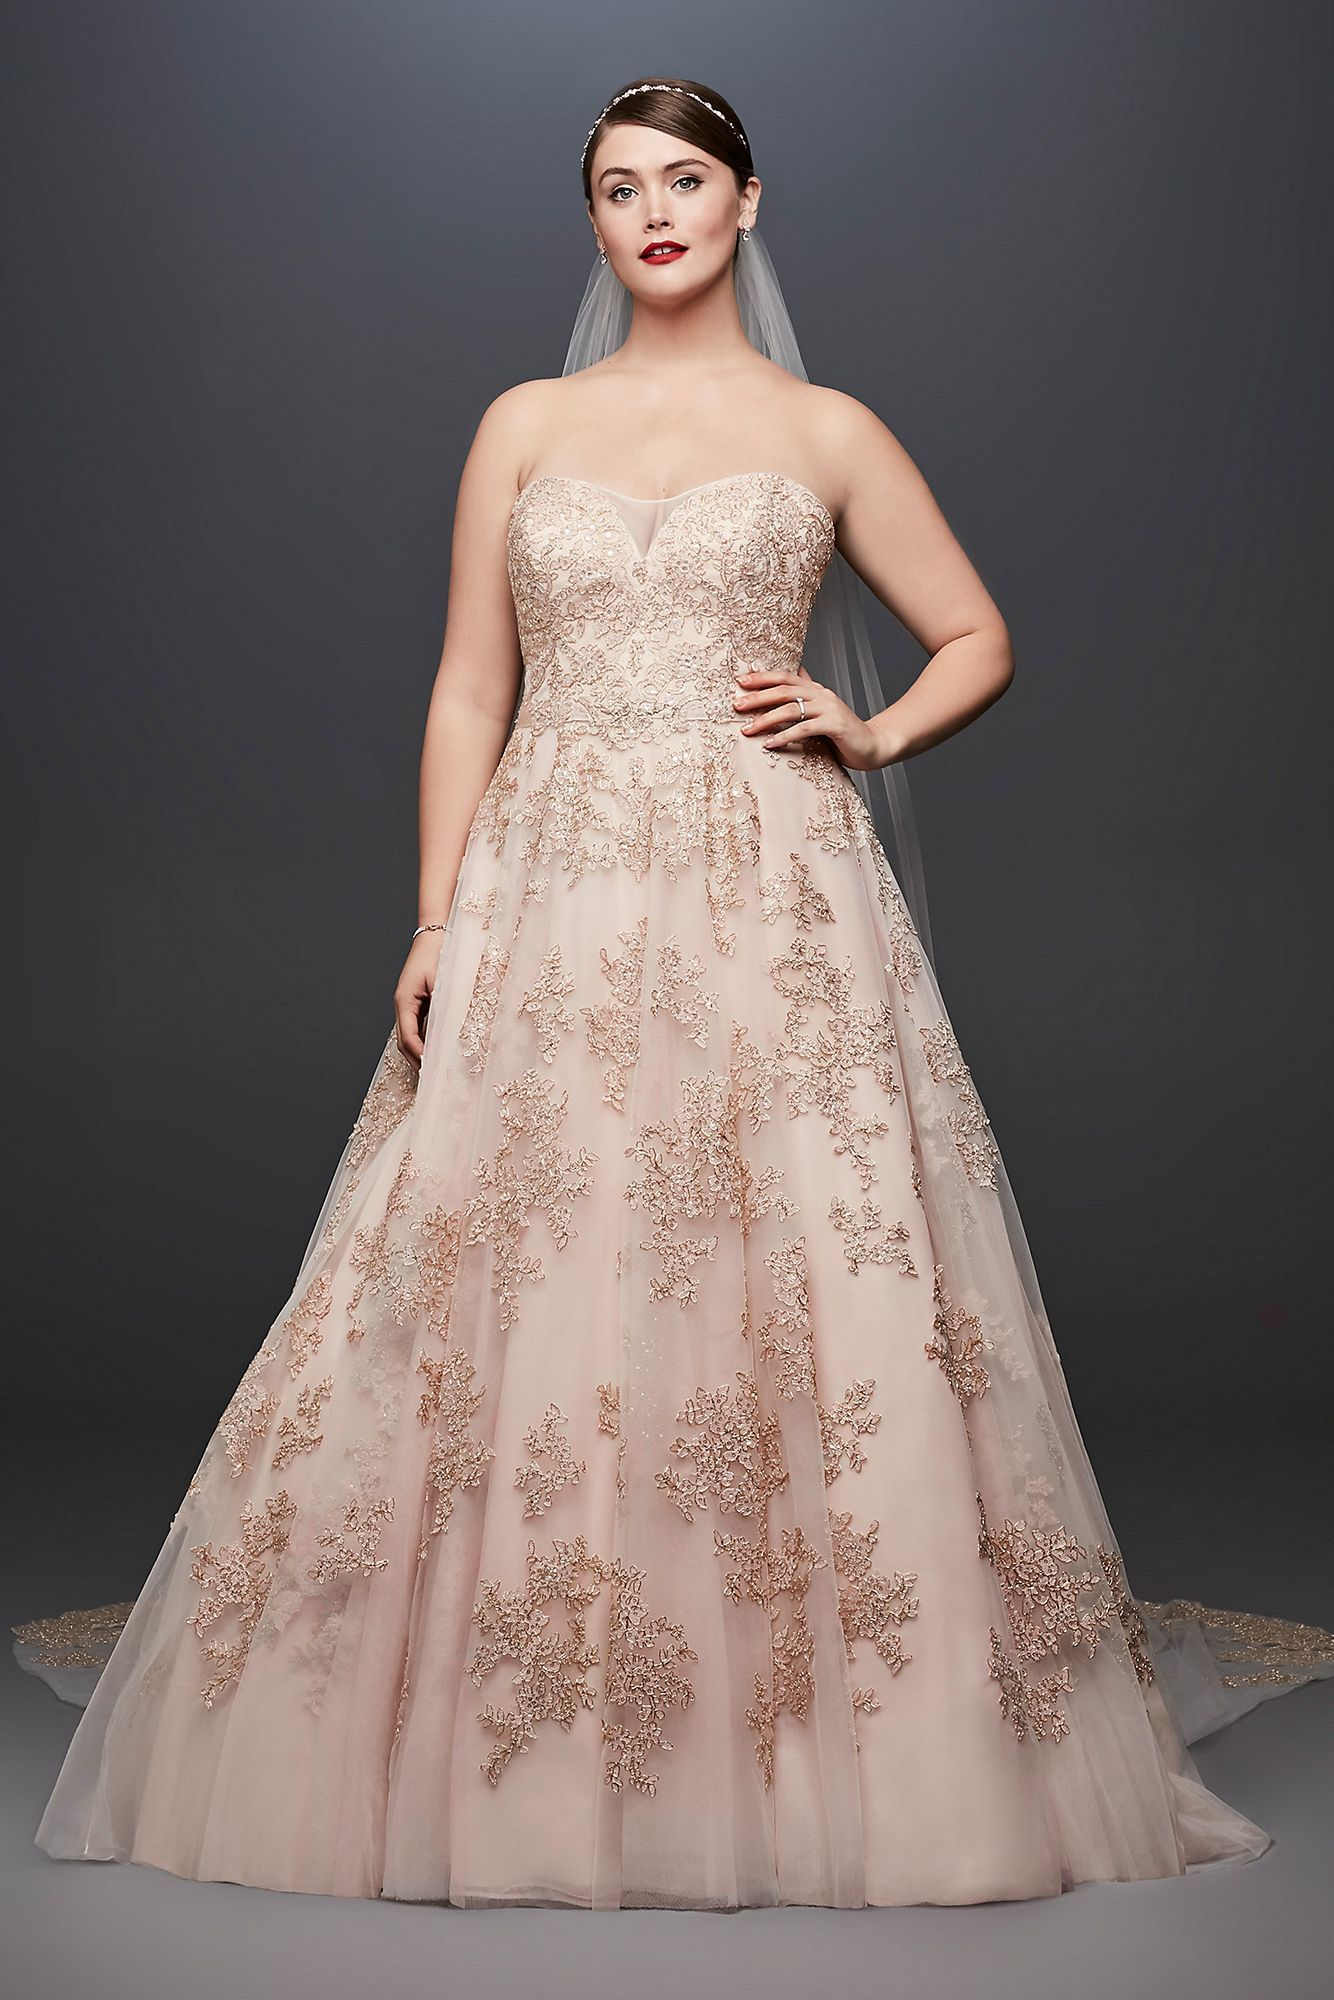 99d1bf9f4fd Rose Gold A-Line Plus Size Wedding Dress Oleg Cassini style 8CWG767 ...